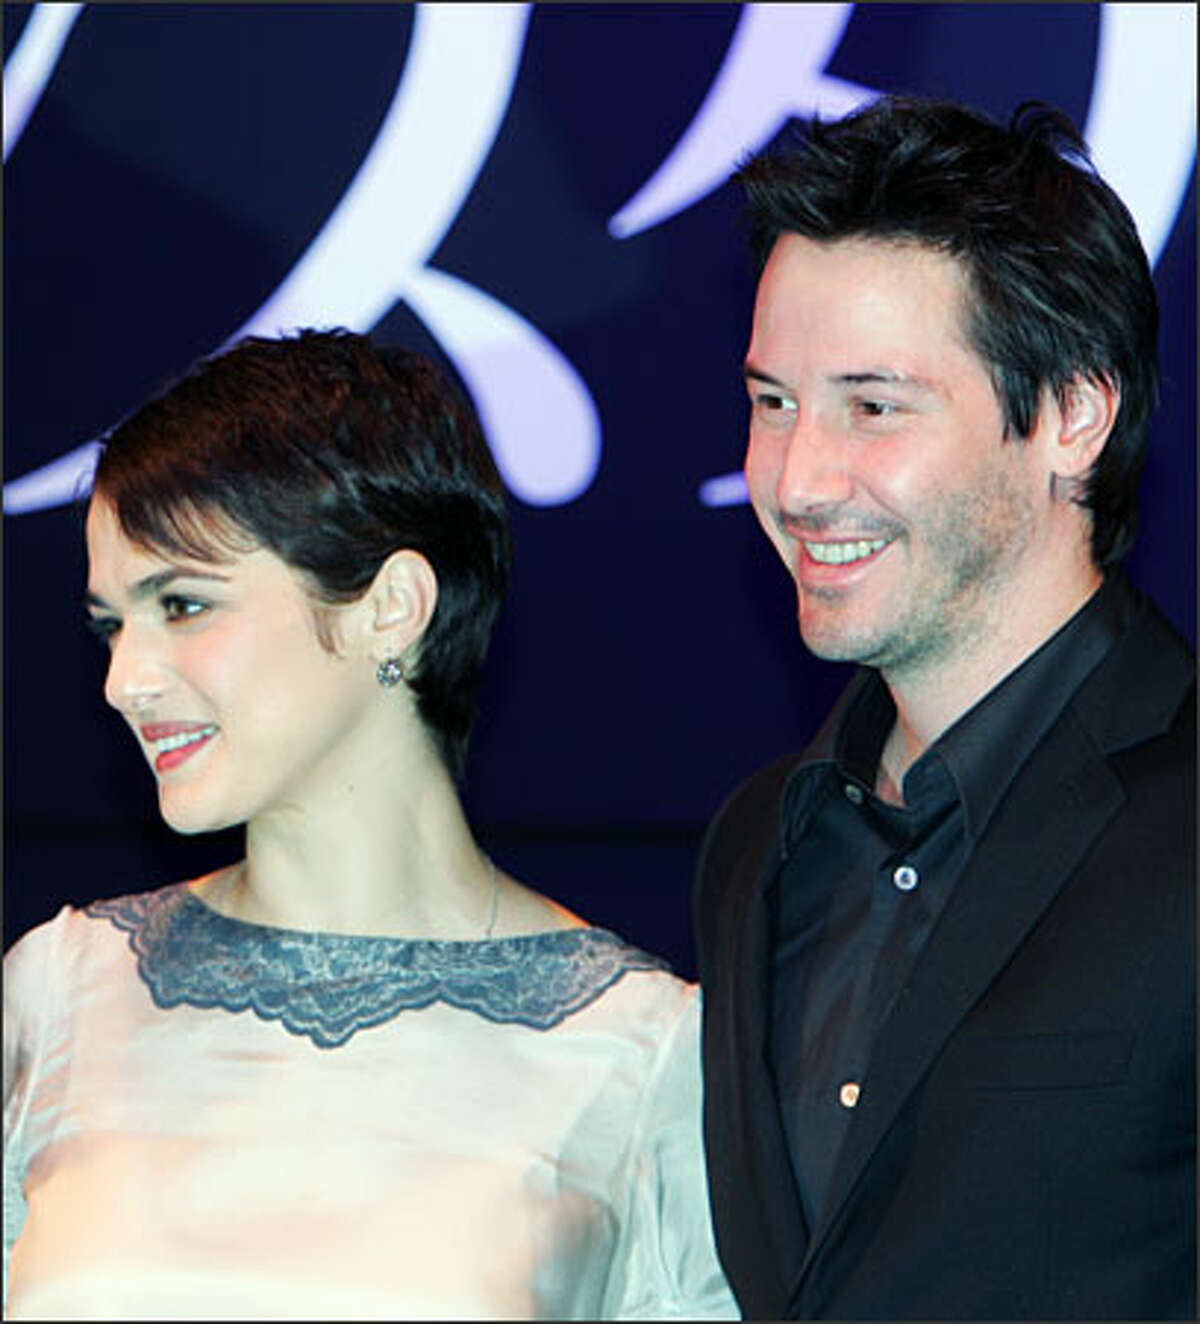 Rachel Weisz and Keanu Reeves are in Japan this week promoting their film